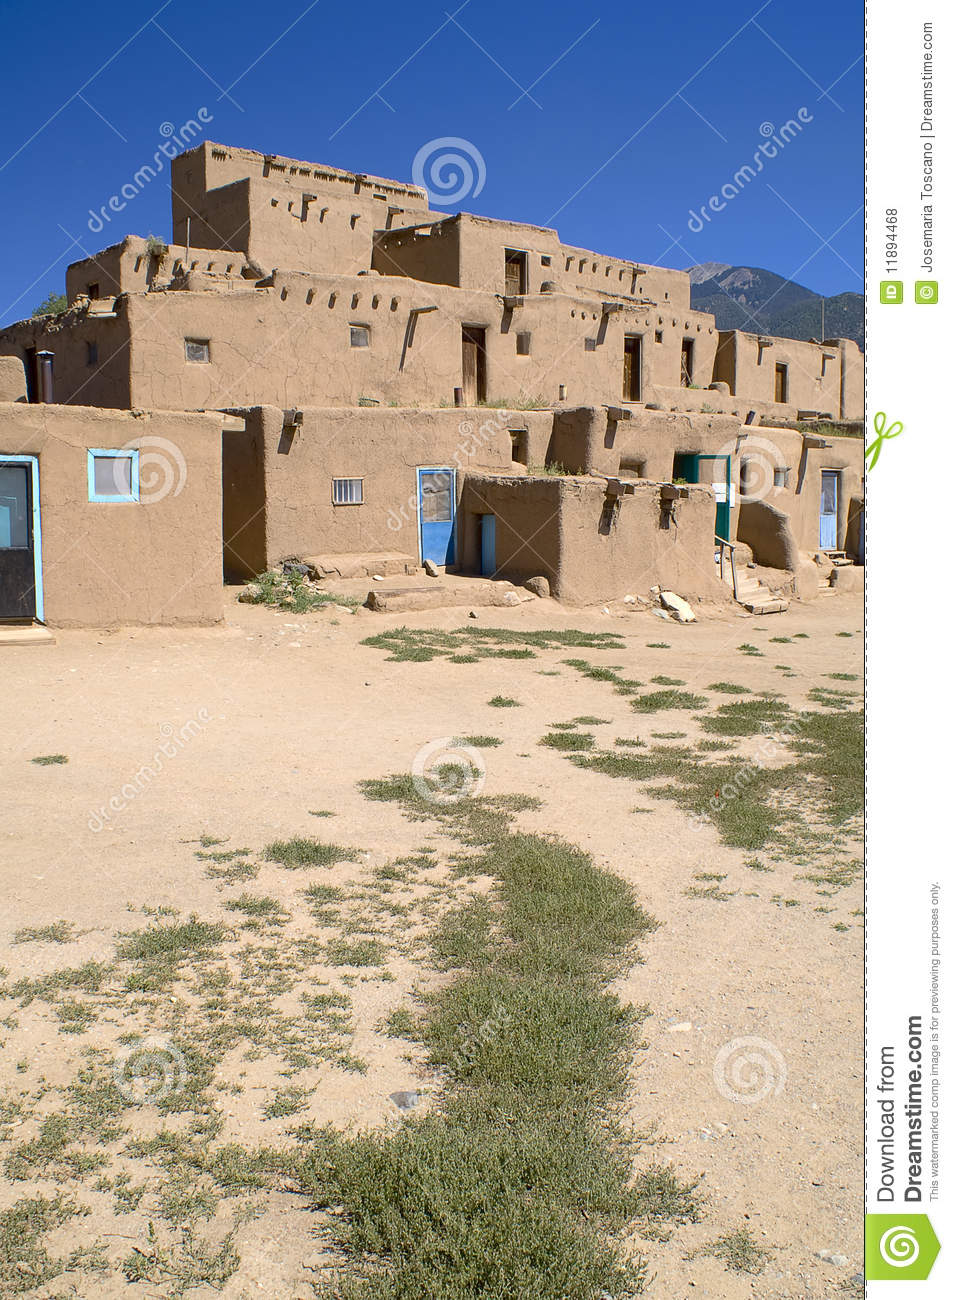 Adobe houses in the pueblo of taos royalty free stock photos image 11894468 - Pueblo adobe houses property ...